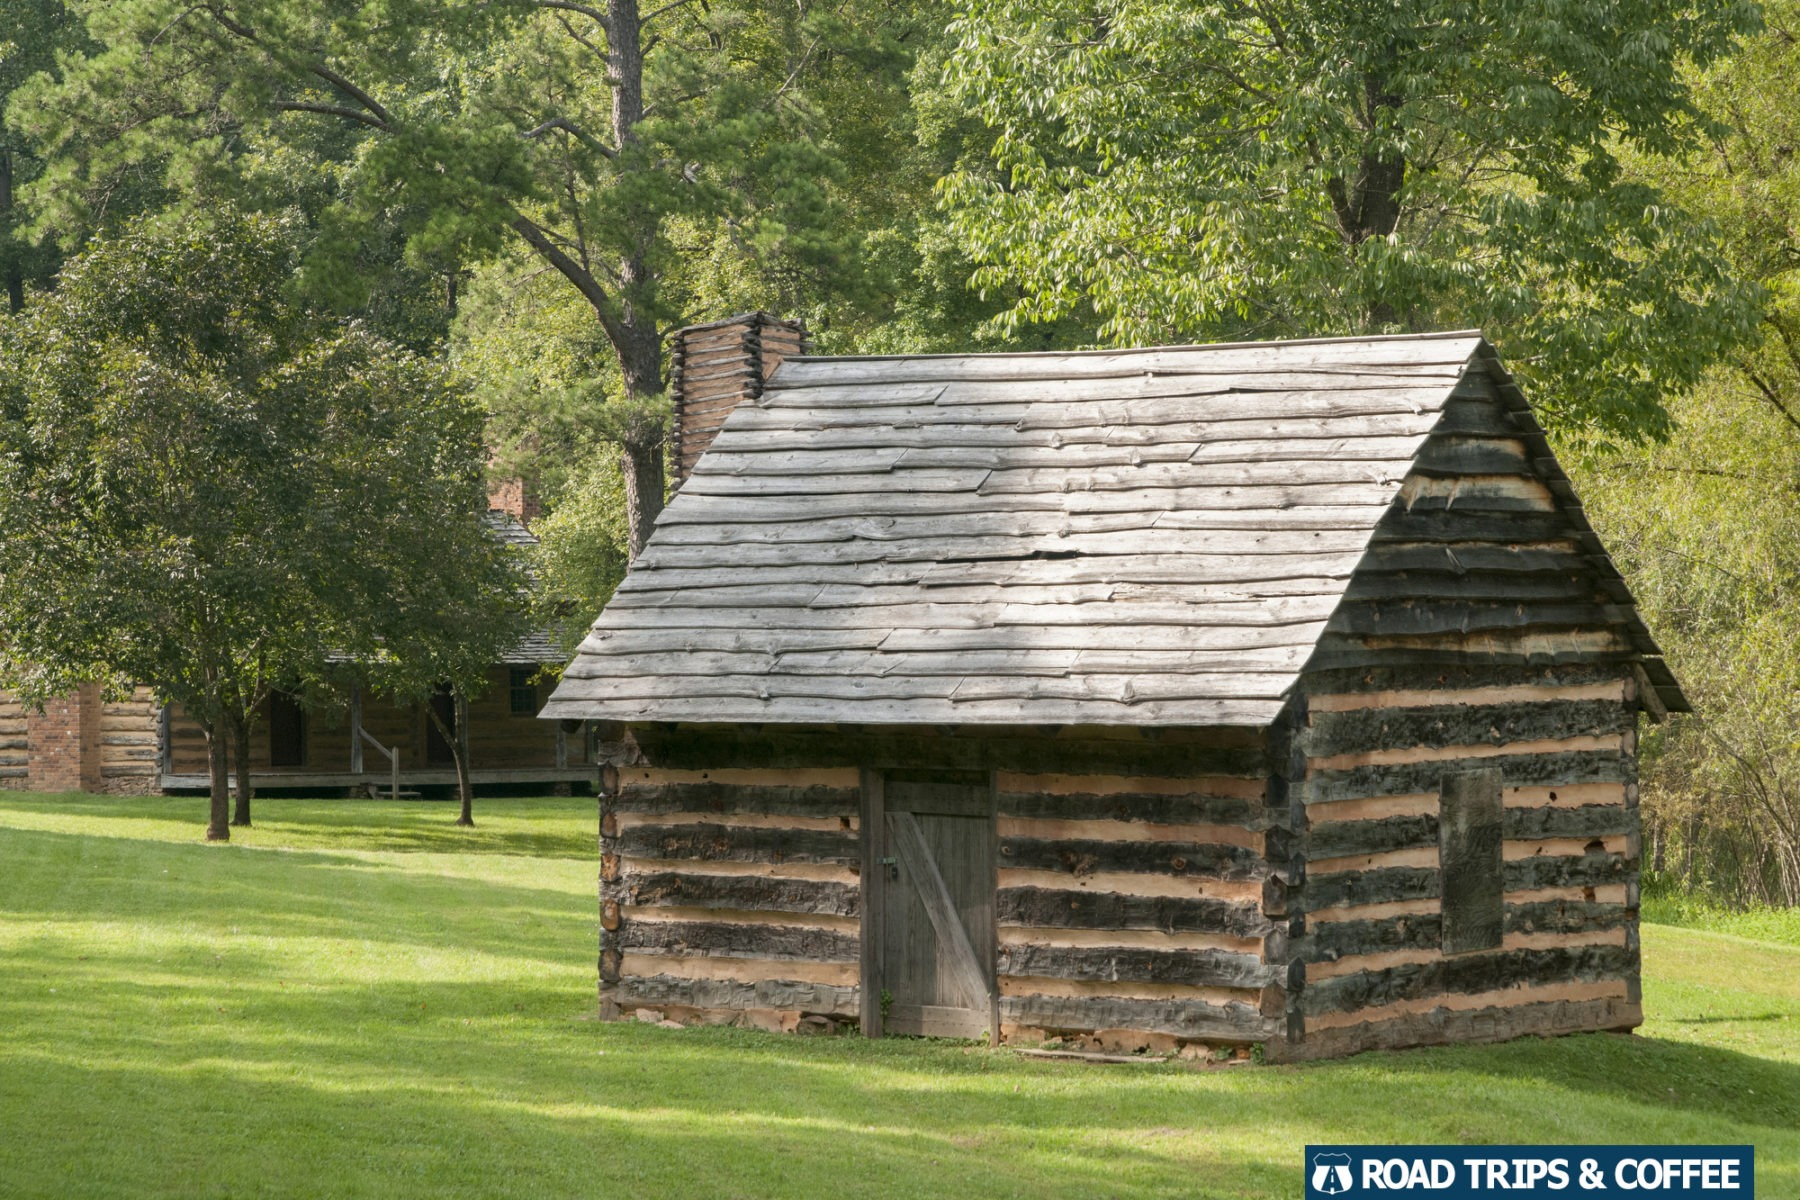 A small outbuilding in the settlement village at Virginia's Explore Park on the Blue Ridge Parkway in Roanoke, Virginia